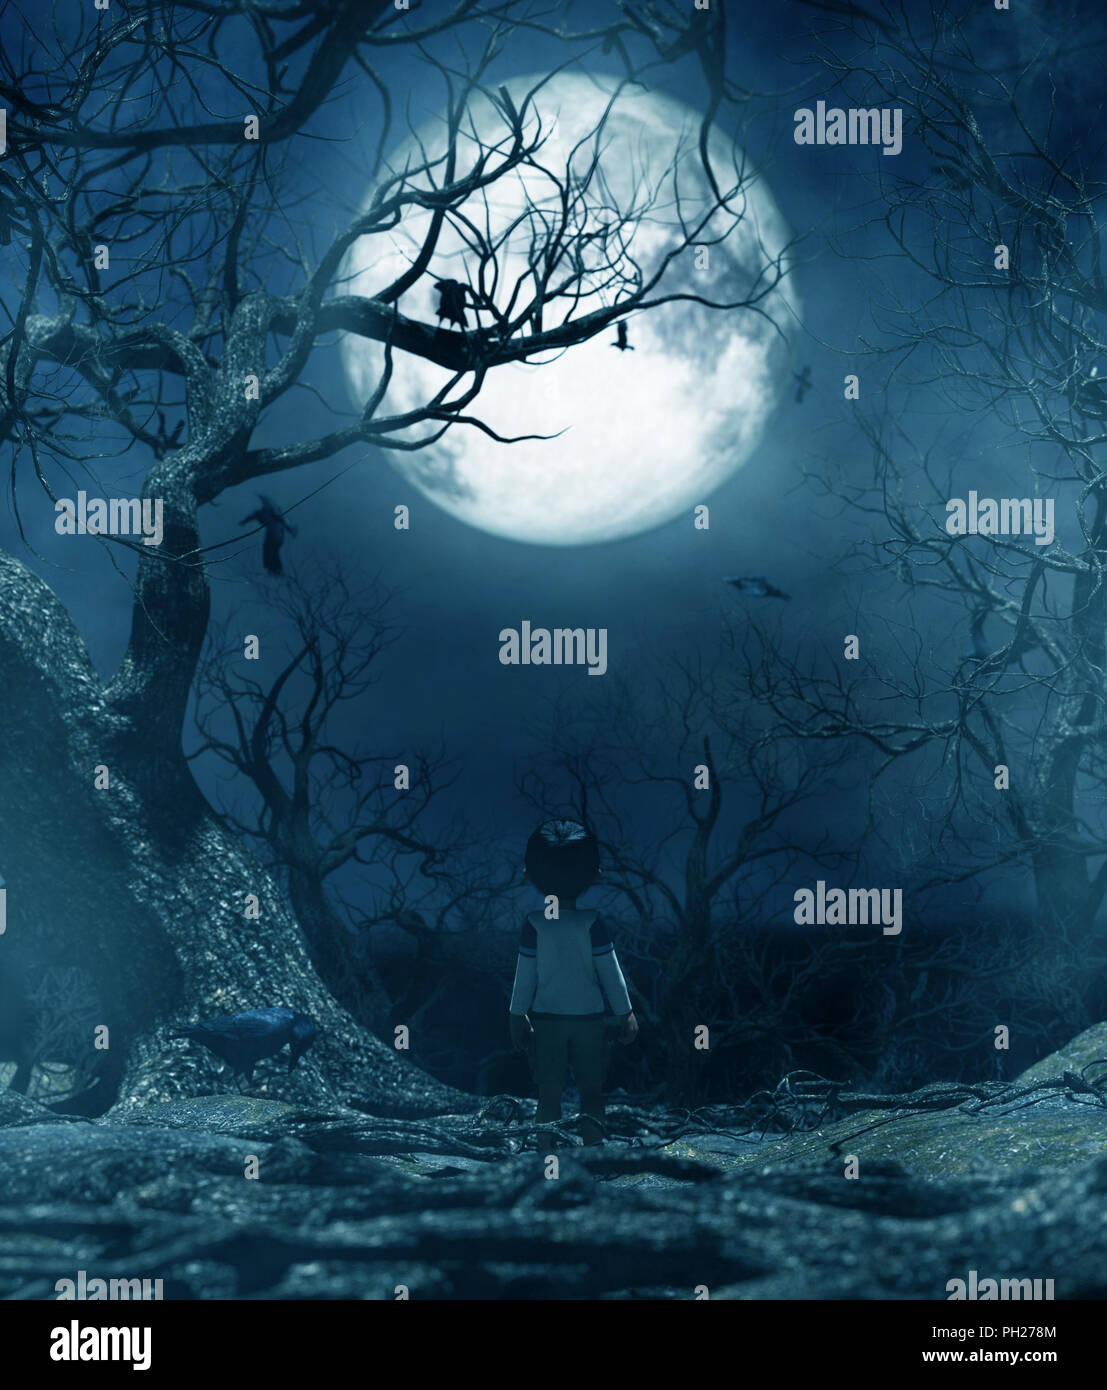 Boy walking alone at night under the moonlightboy lost in the haunted forest3d rendering for book cover or book illustration